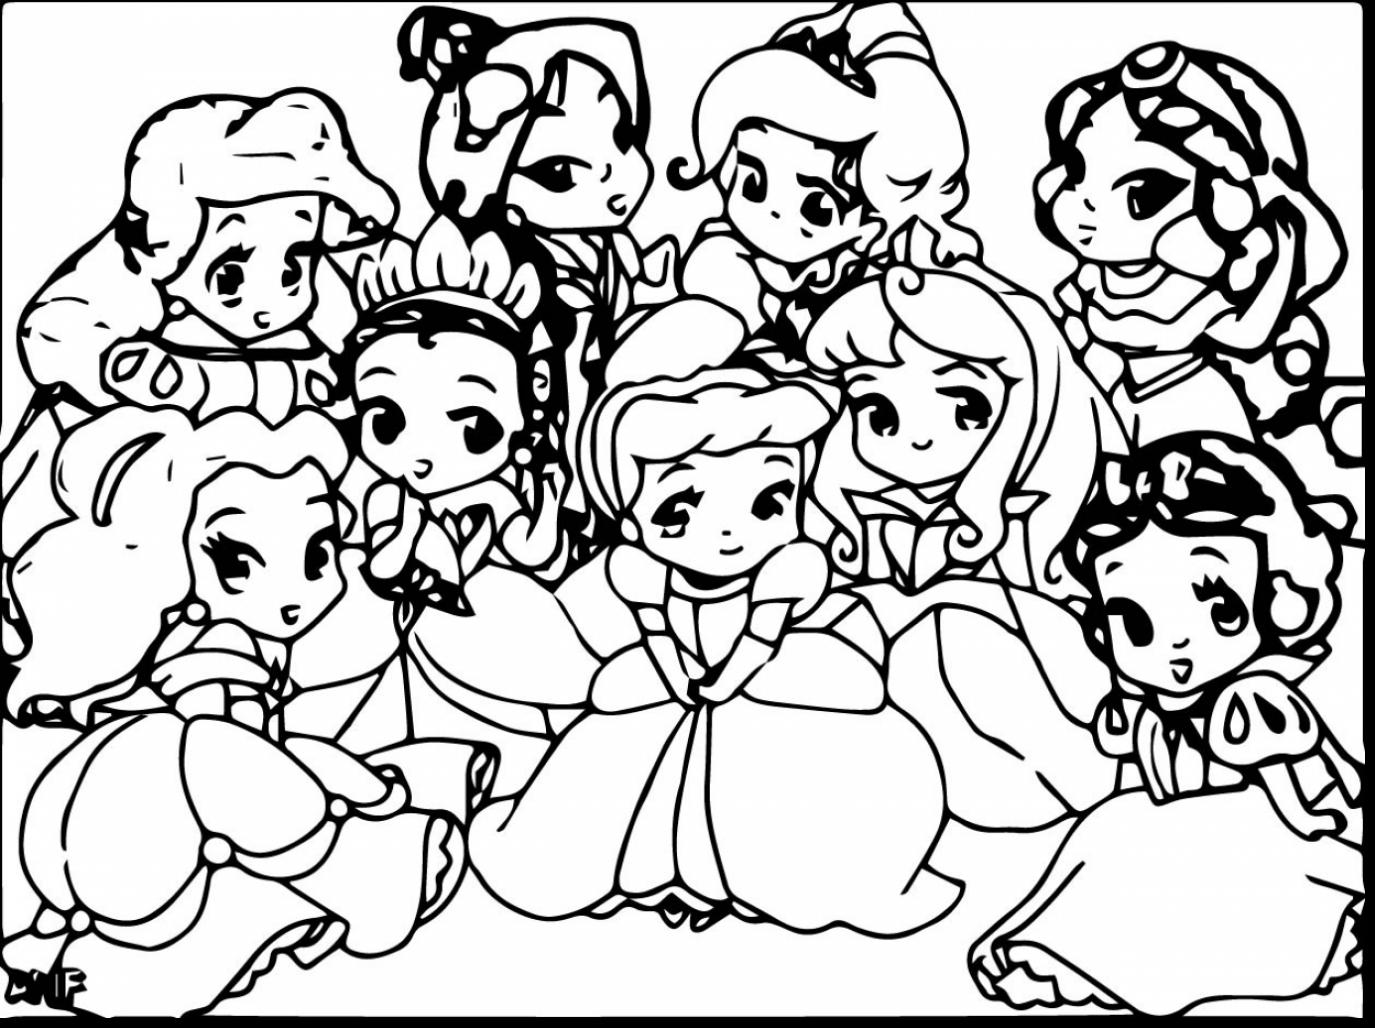 disney cute easy coloring pages easy princess coloring pages at getcoloringscom free disney cute pages coloring easy